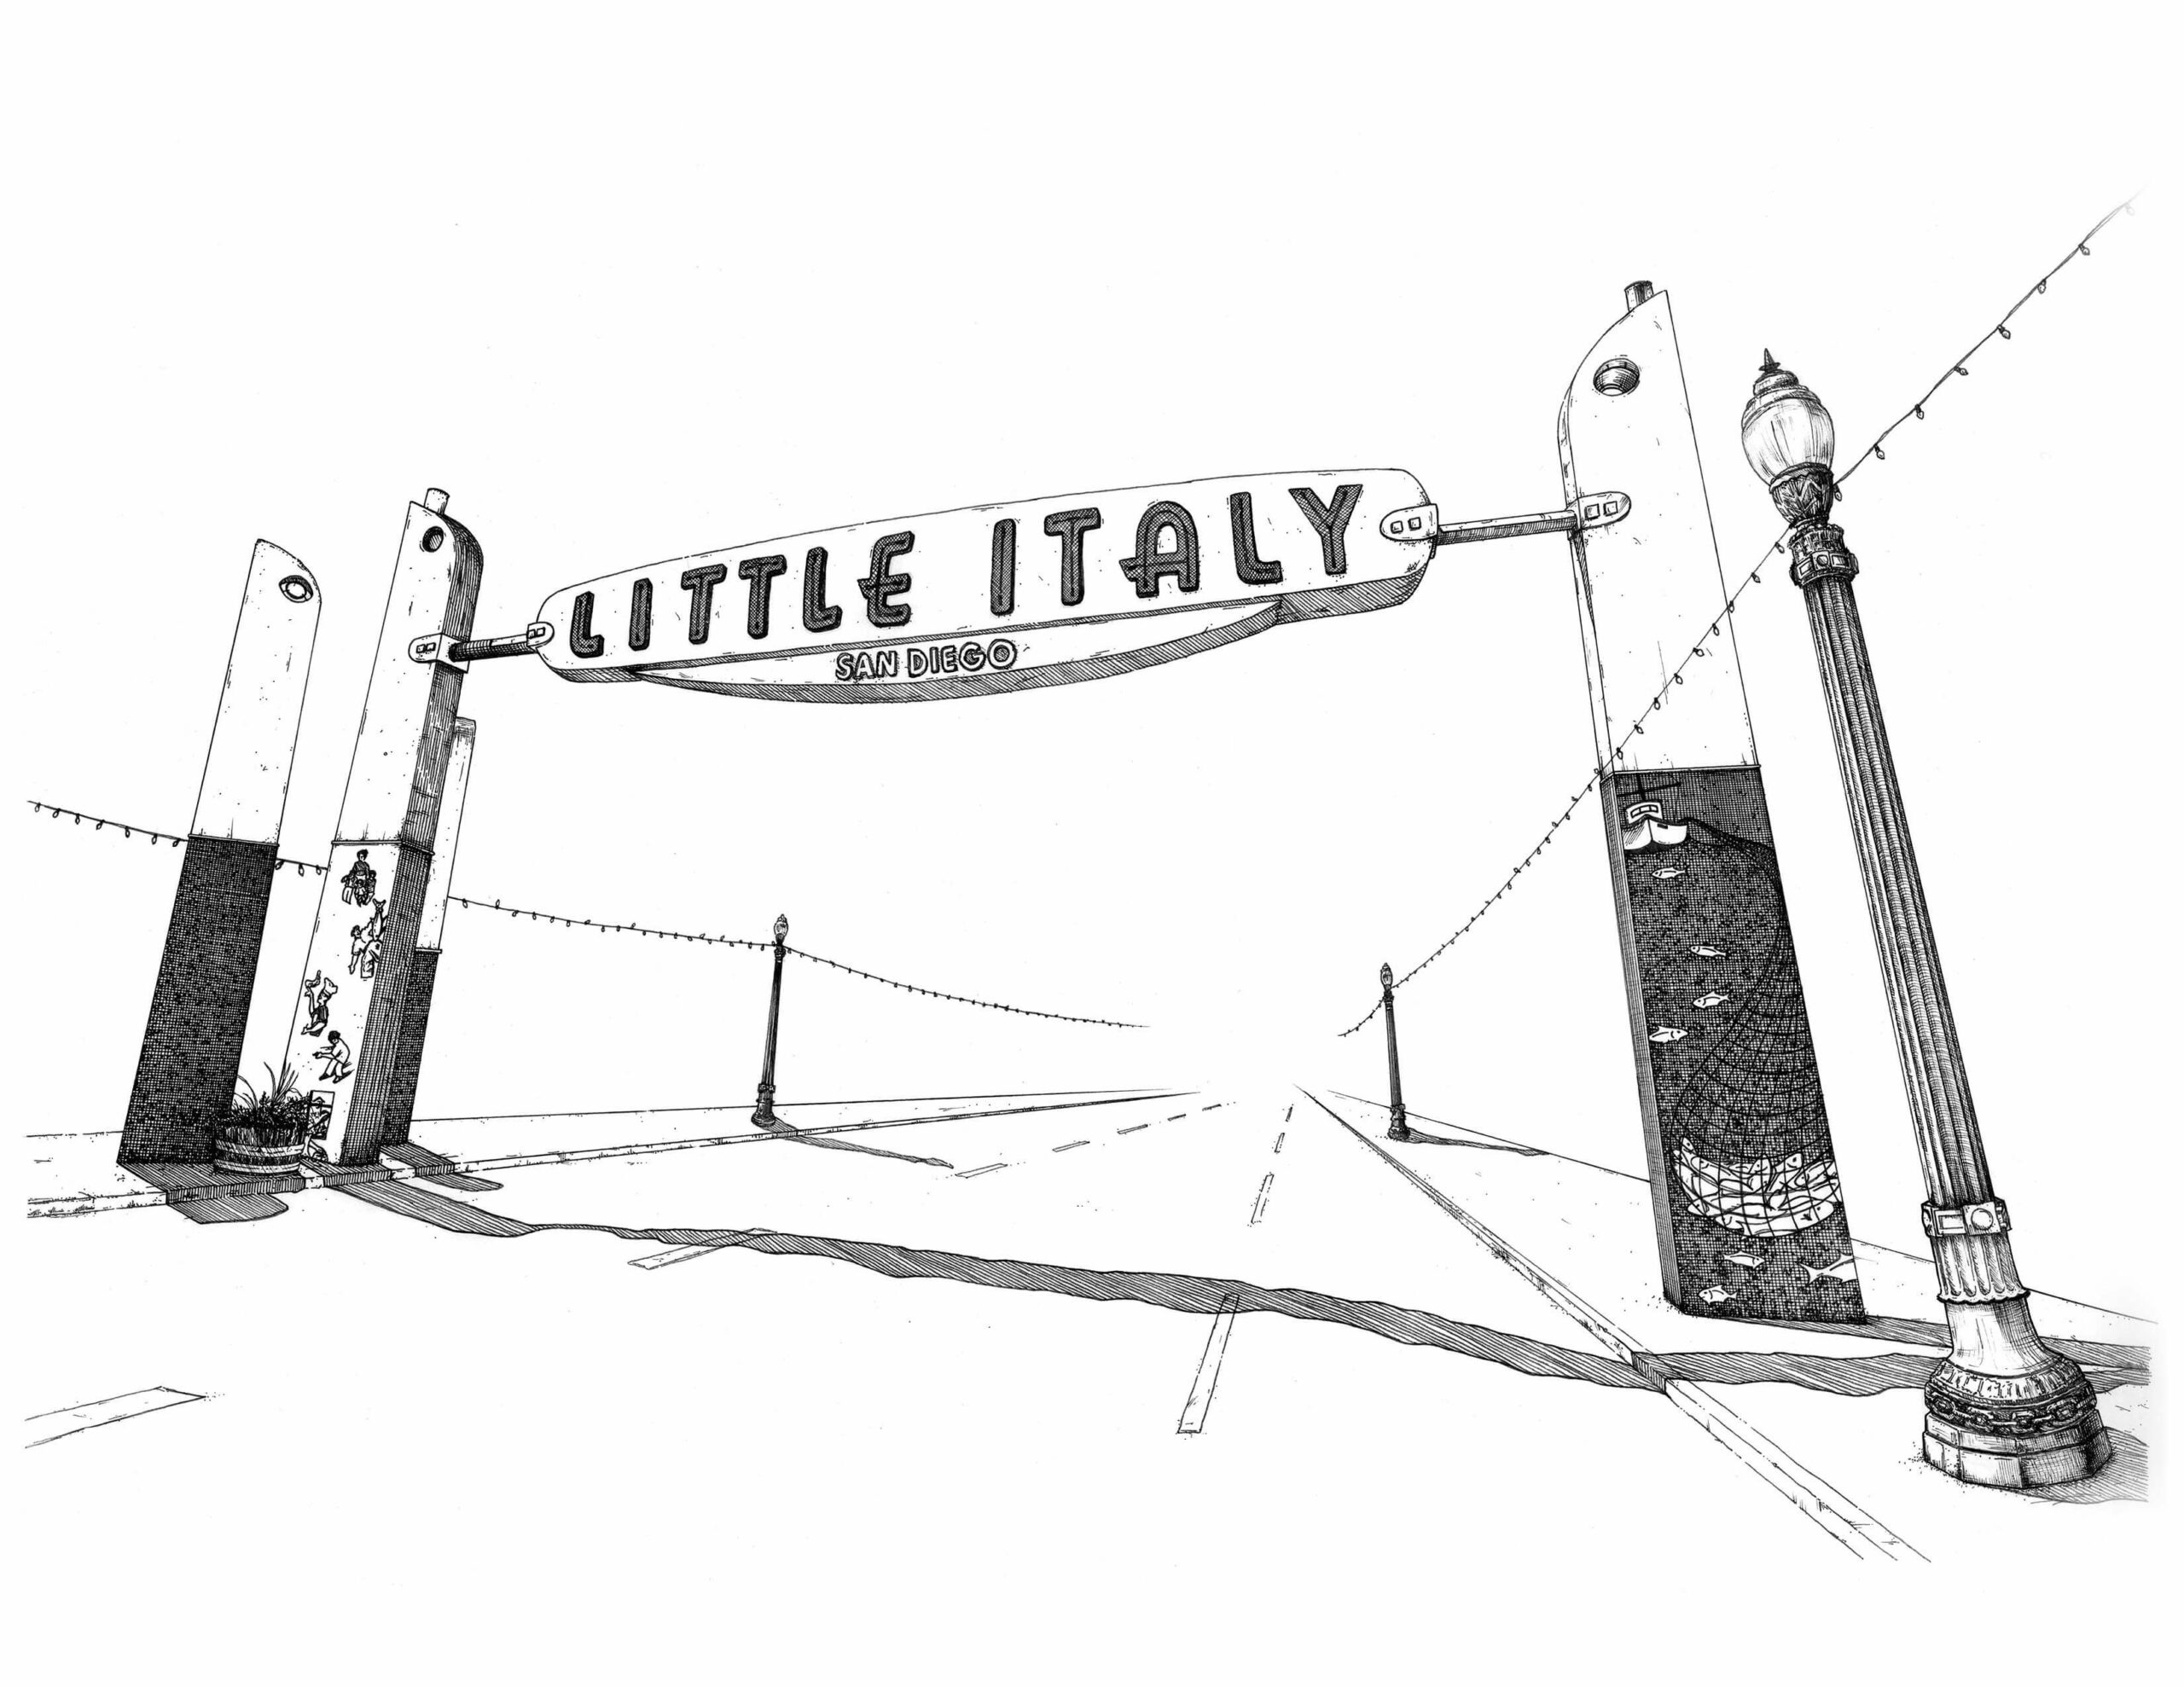 Black and White Illustration of famous Little Italy sign in San Diego, CA